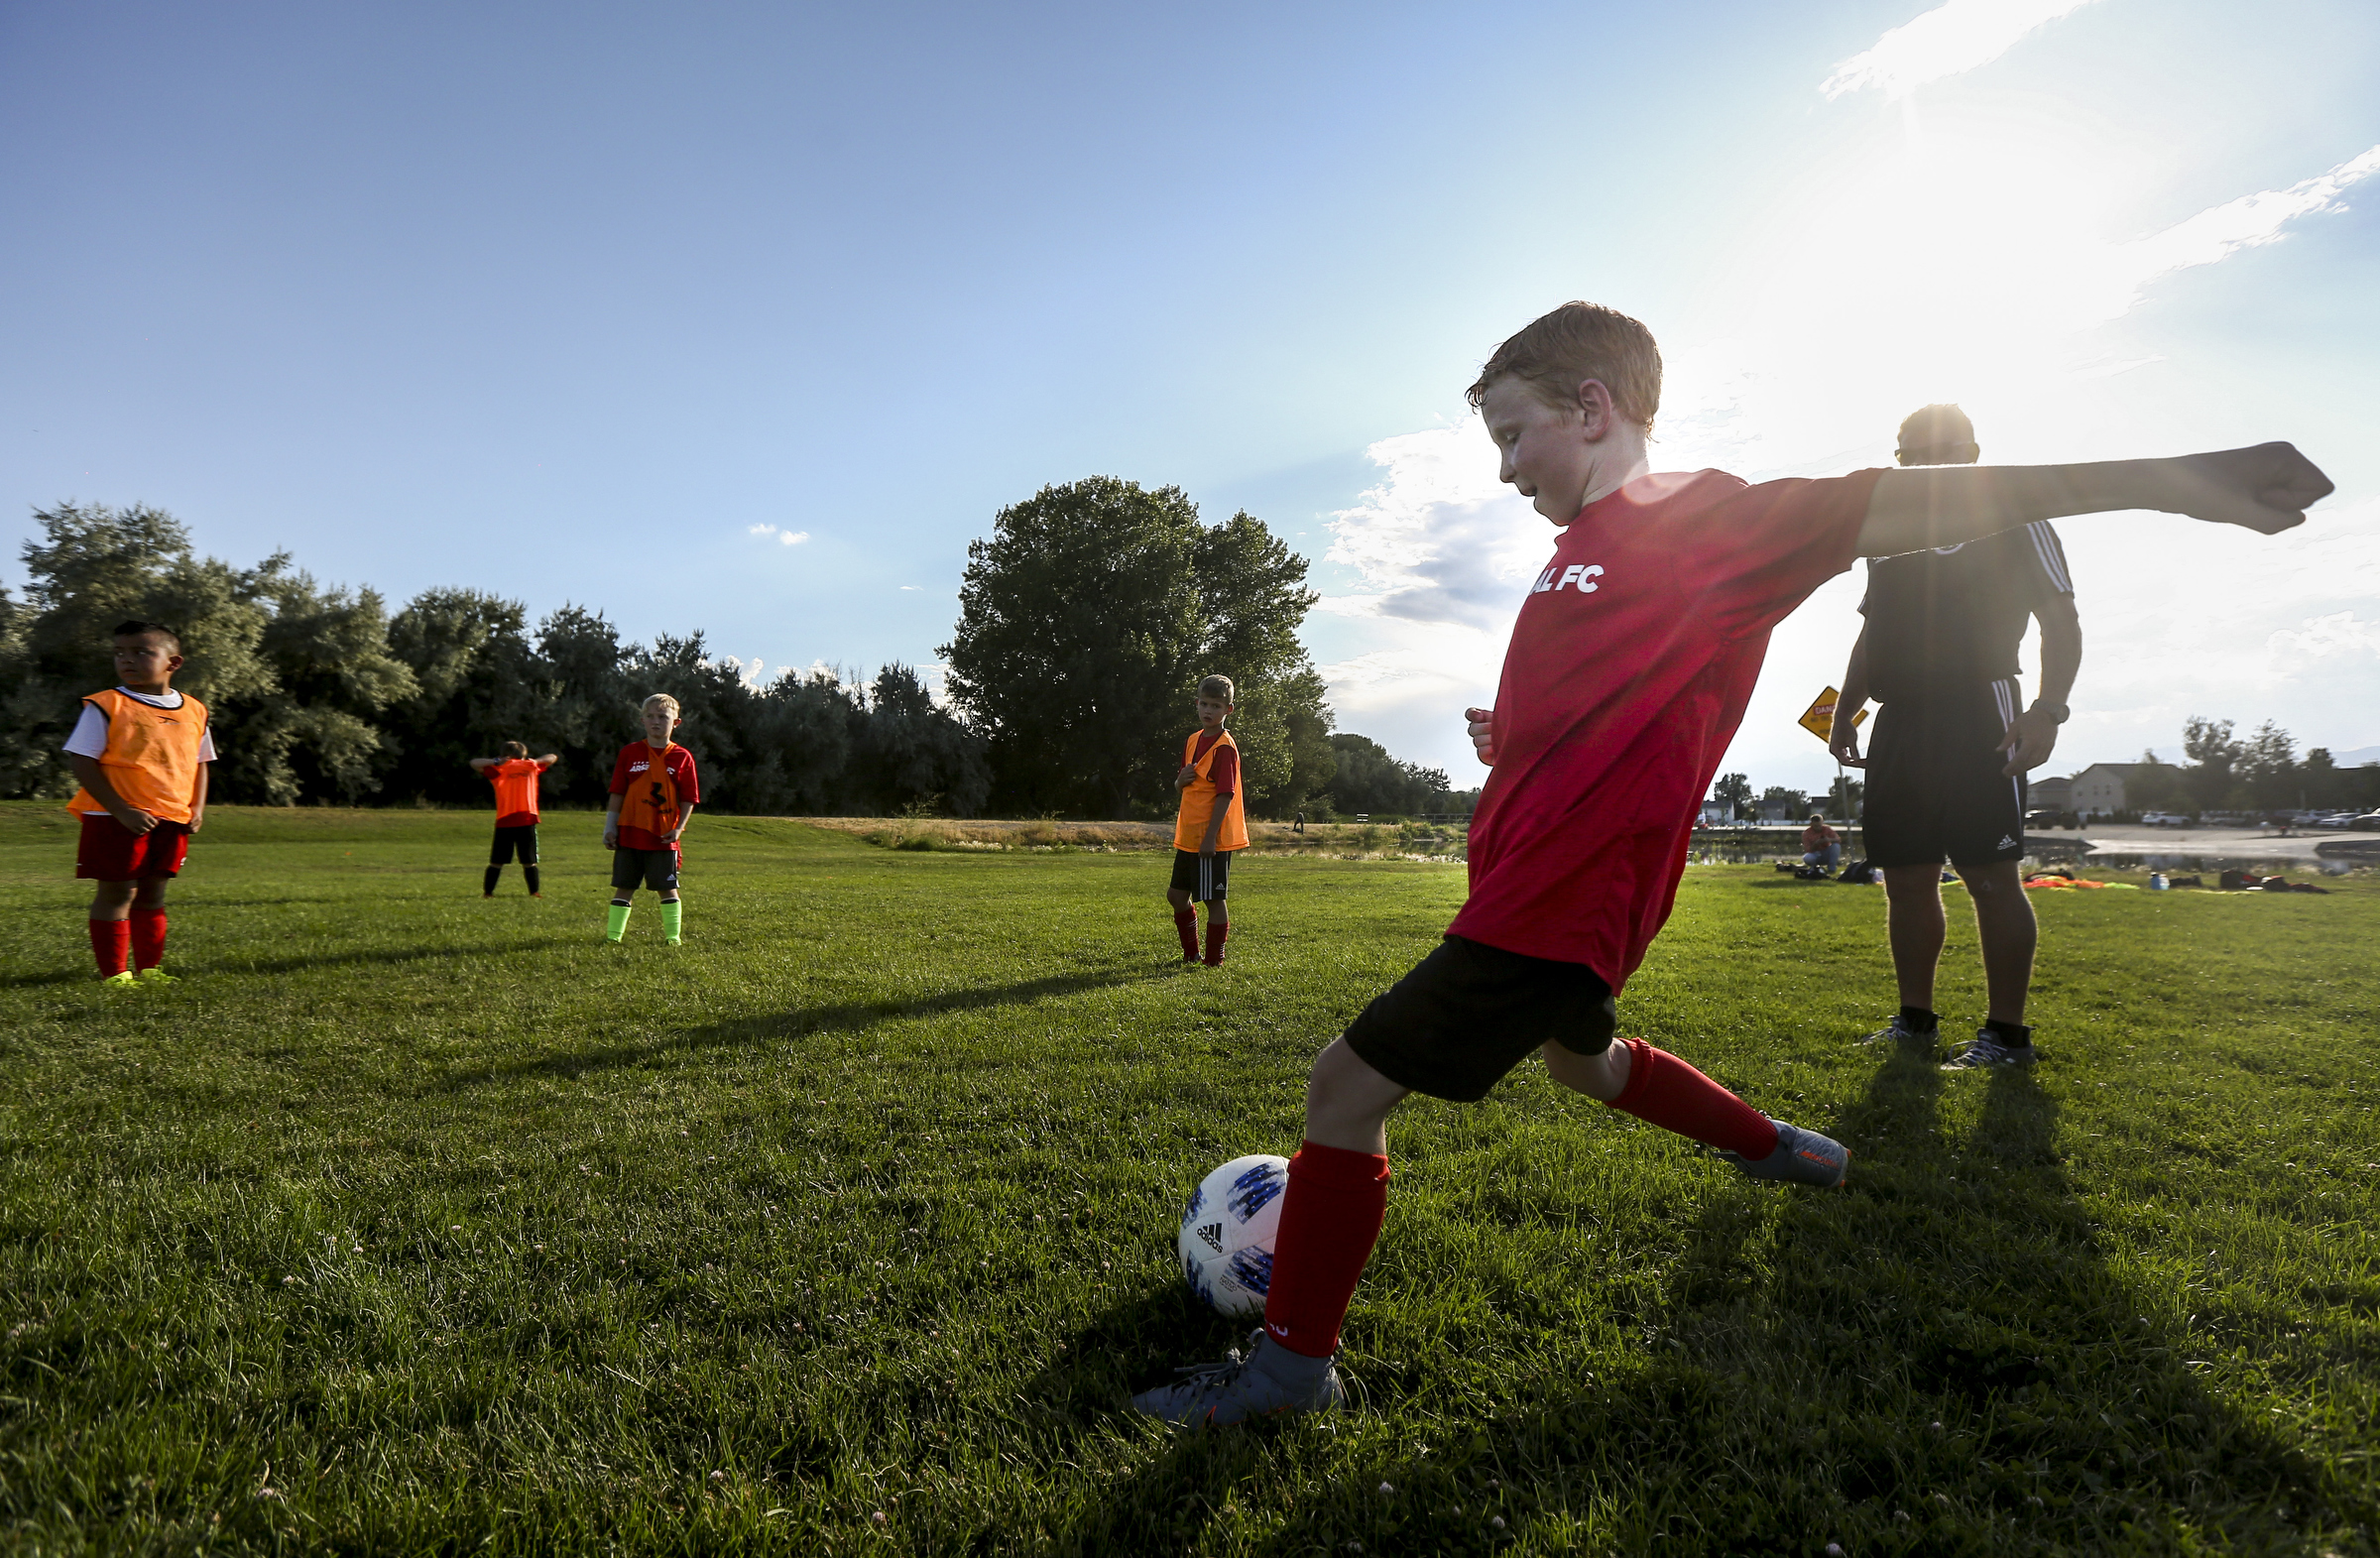 Jones Jackson, 9, kicks the ball to teammates during a keep-away drill in a practice at North Lake Park in Lehi on Thursday, Aug. 1, 2019.